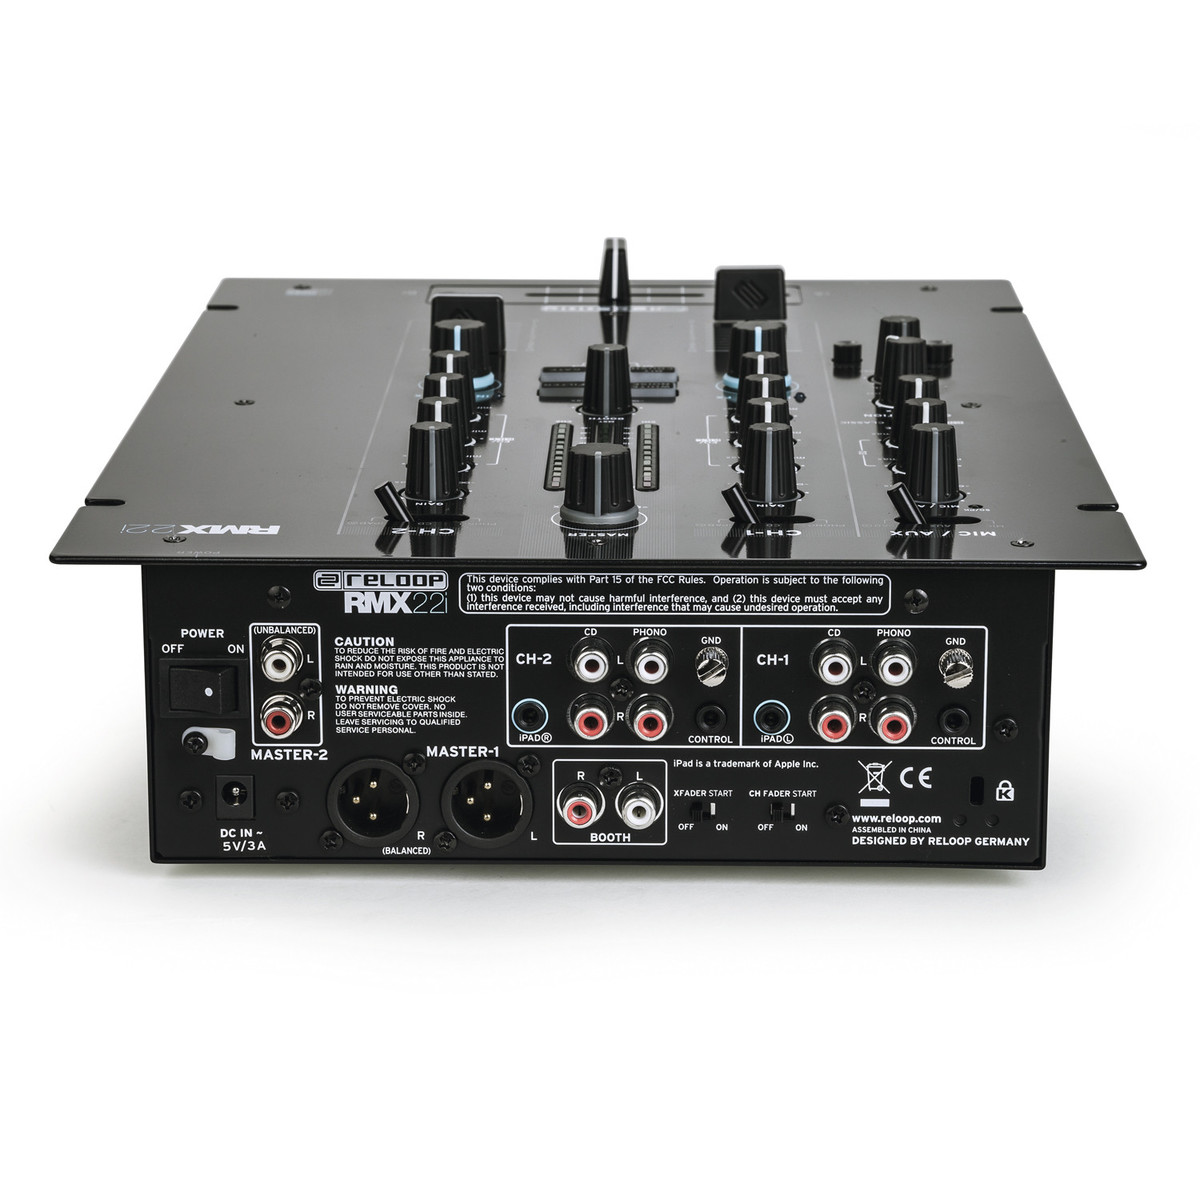 Reloop Rmx 22i 2 Channel Dj Mixer Box Opened At Gear4musiccom Stereo For Microphone With Channels